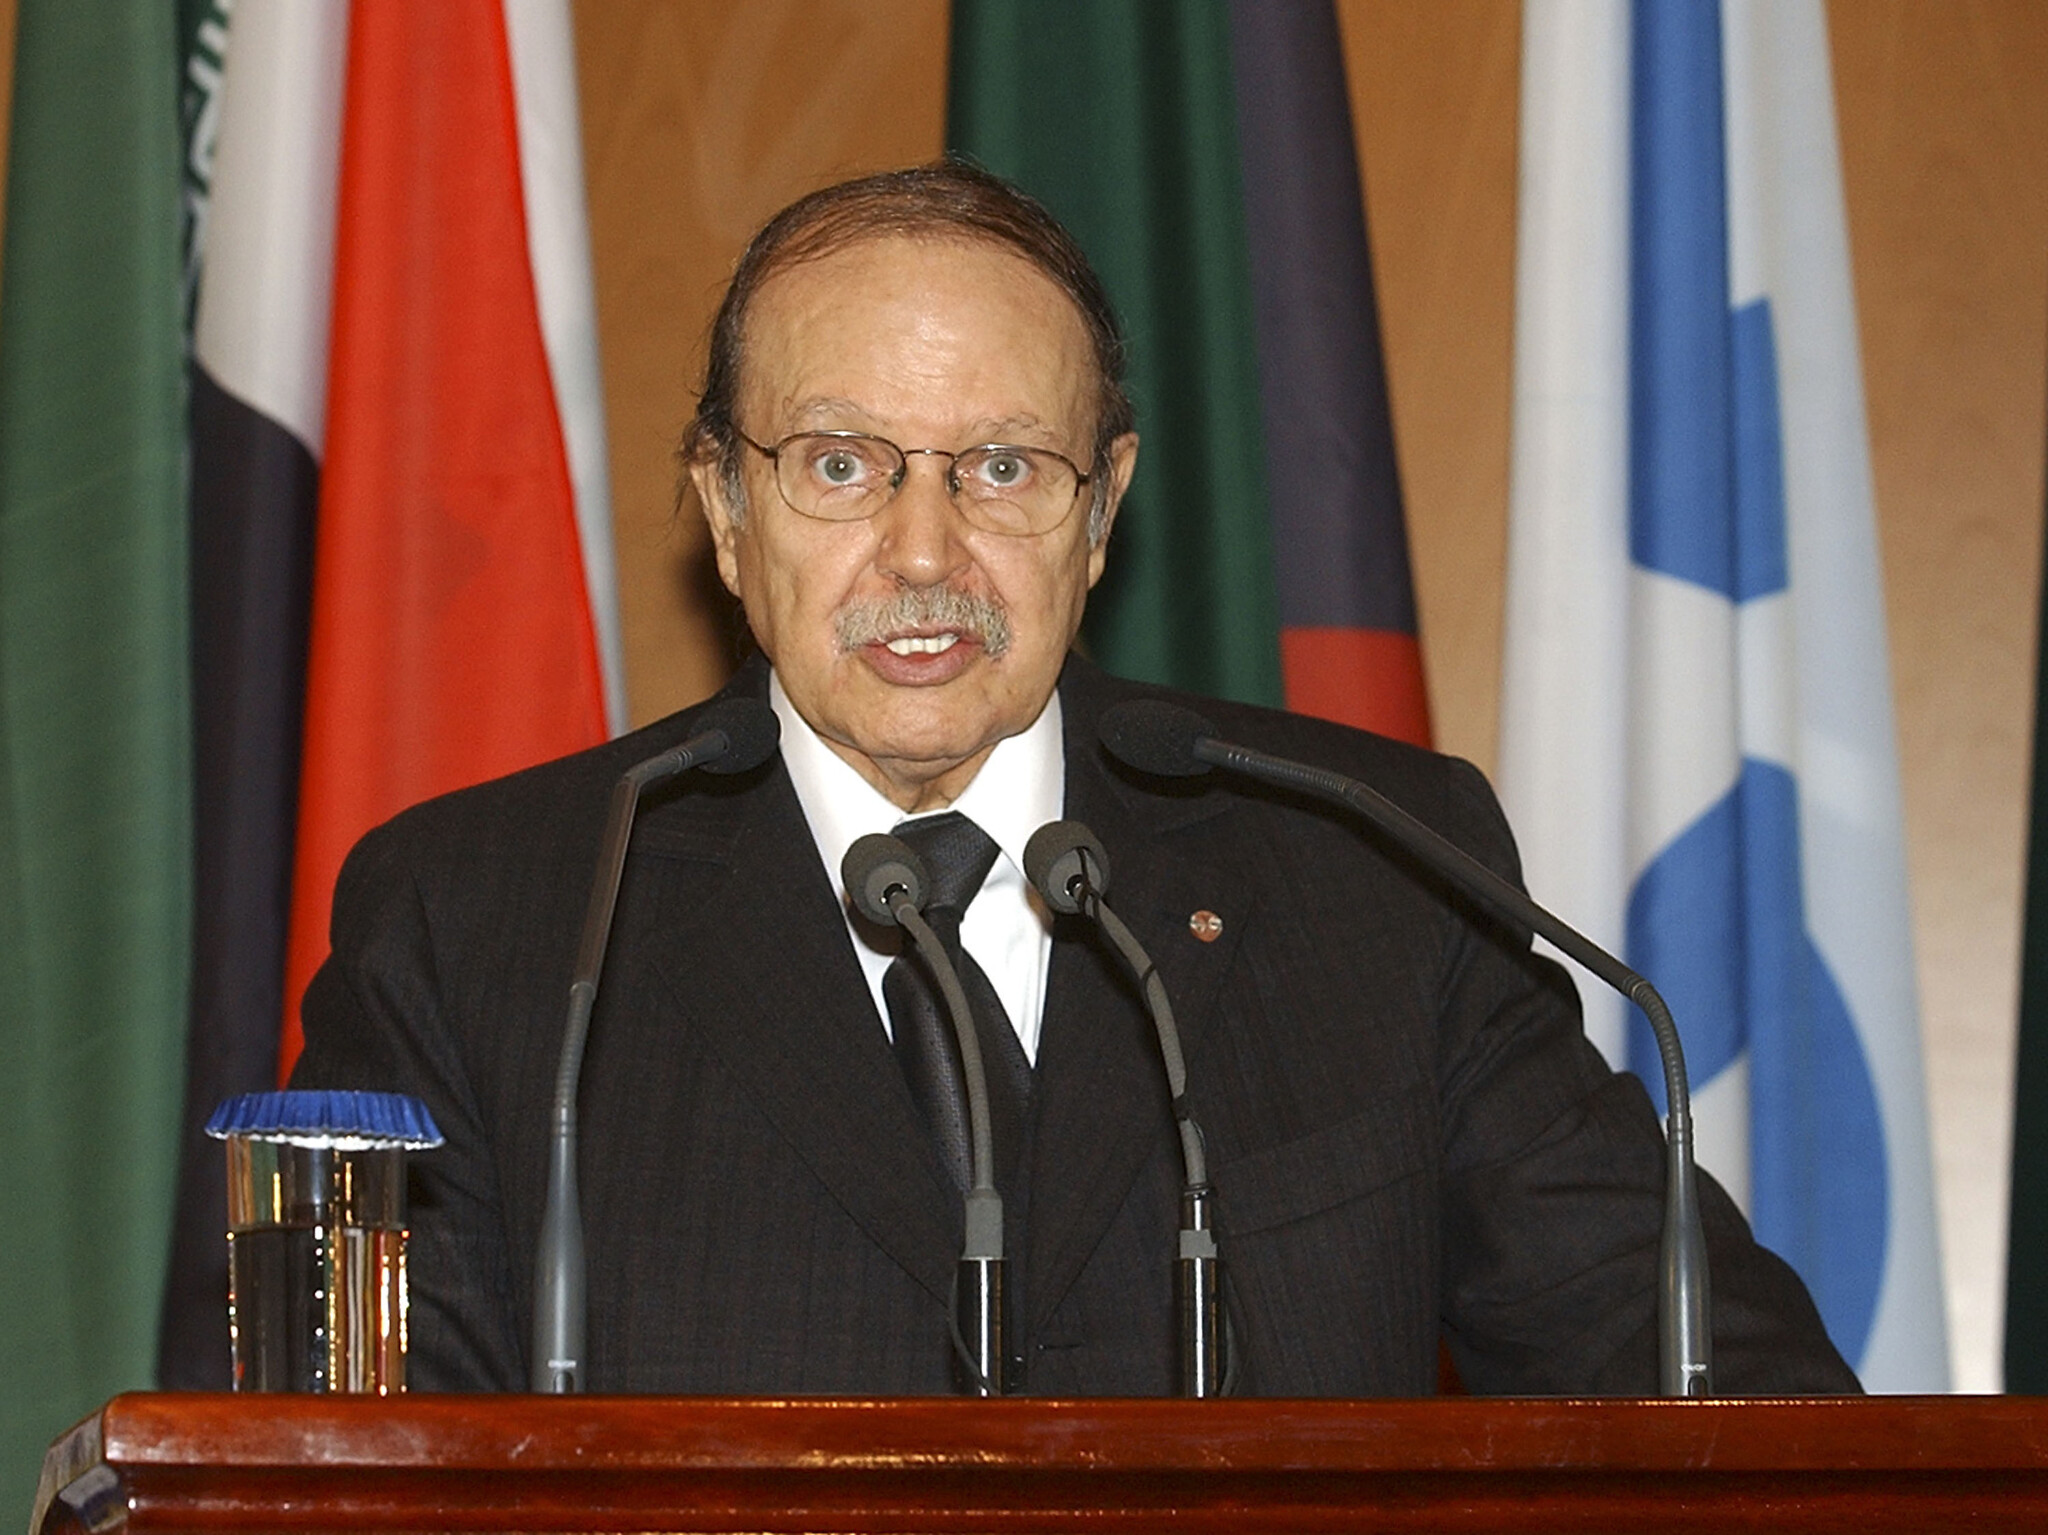 Algeria jails two former prime ministers over corruption